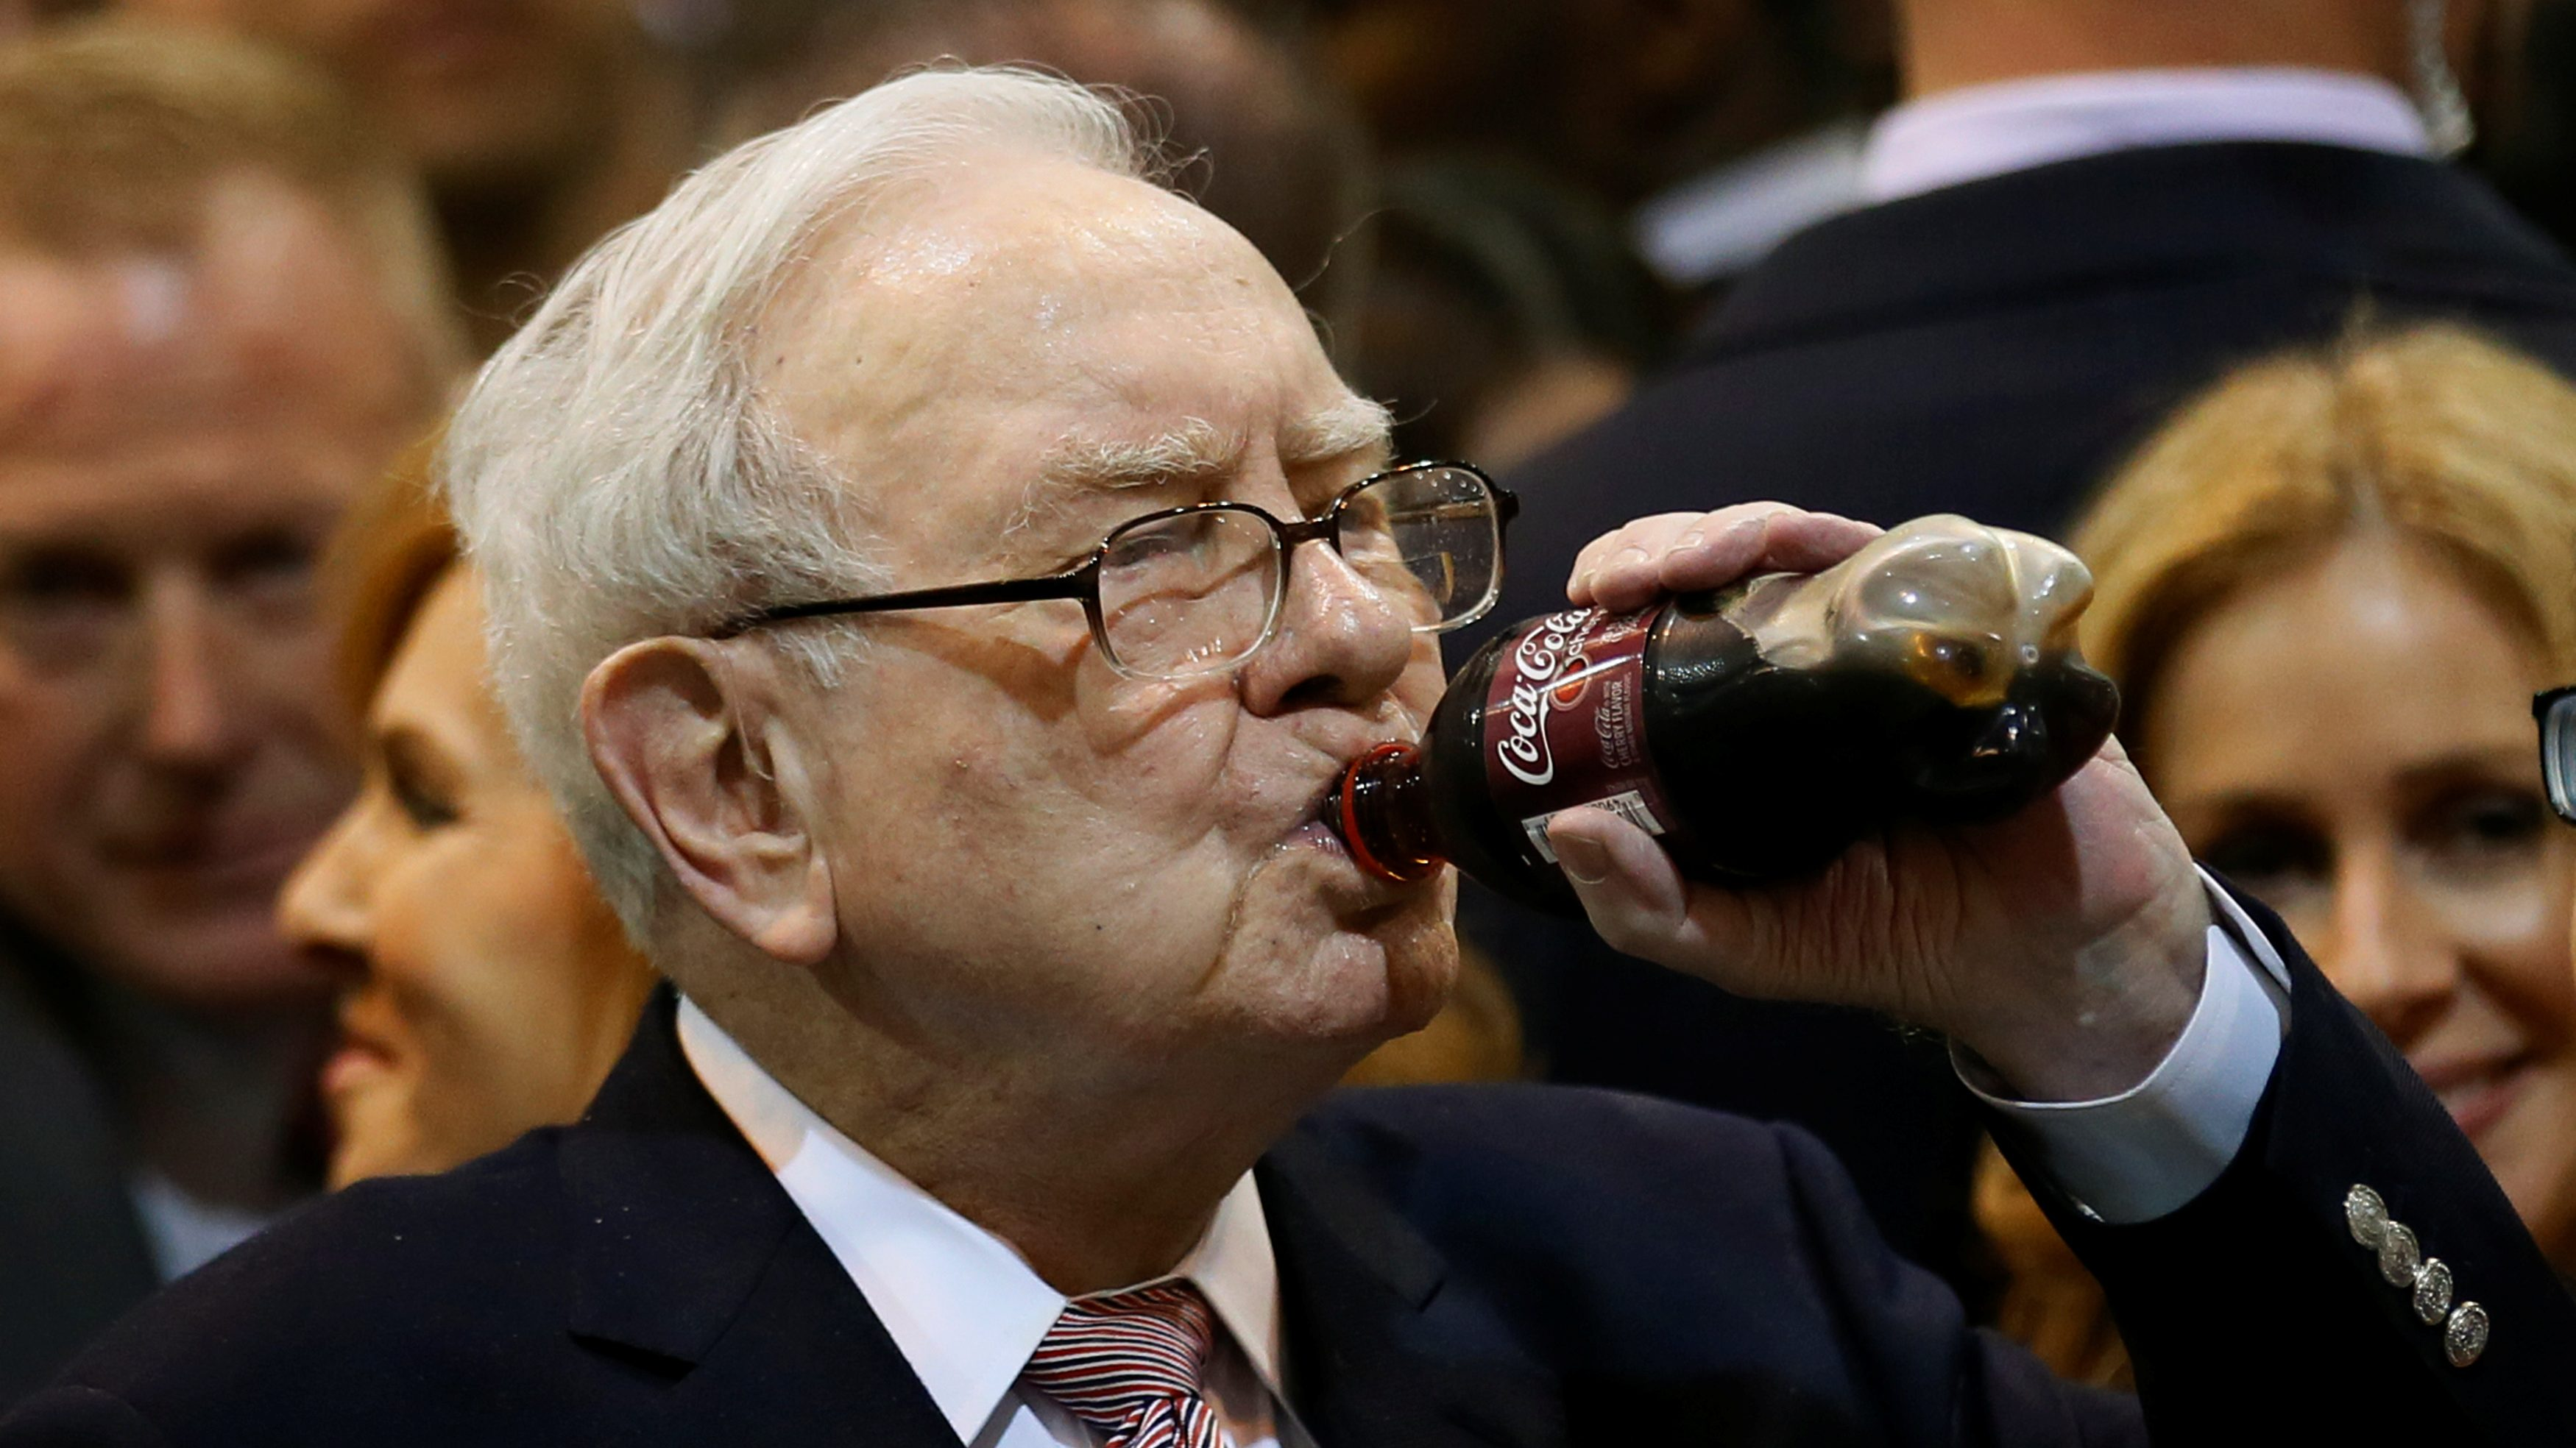 Berkshire Hathaway chairman and CEO Warren Buffett enjoys his favourite beverage, cherry Coke, before the Berkshire Hathaway annual meeting in Omaha